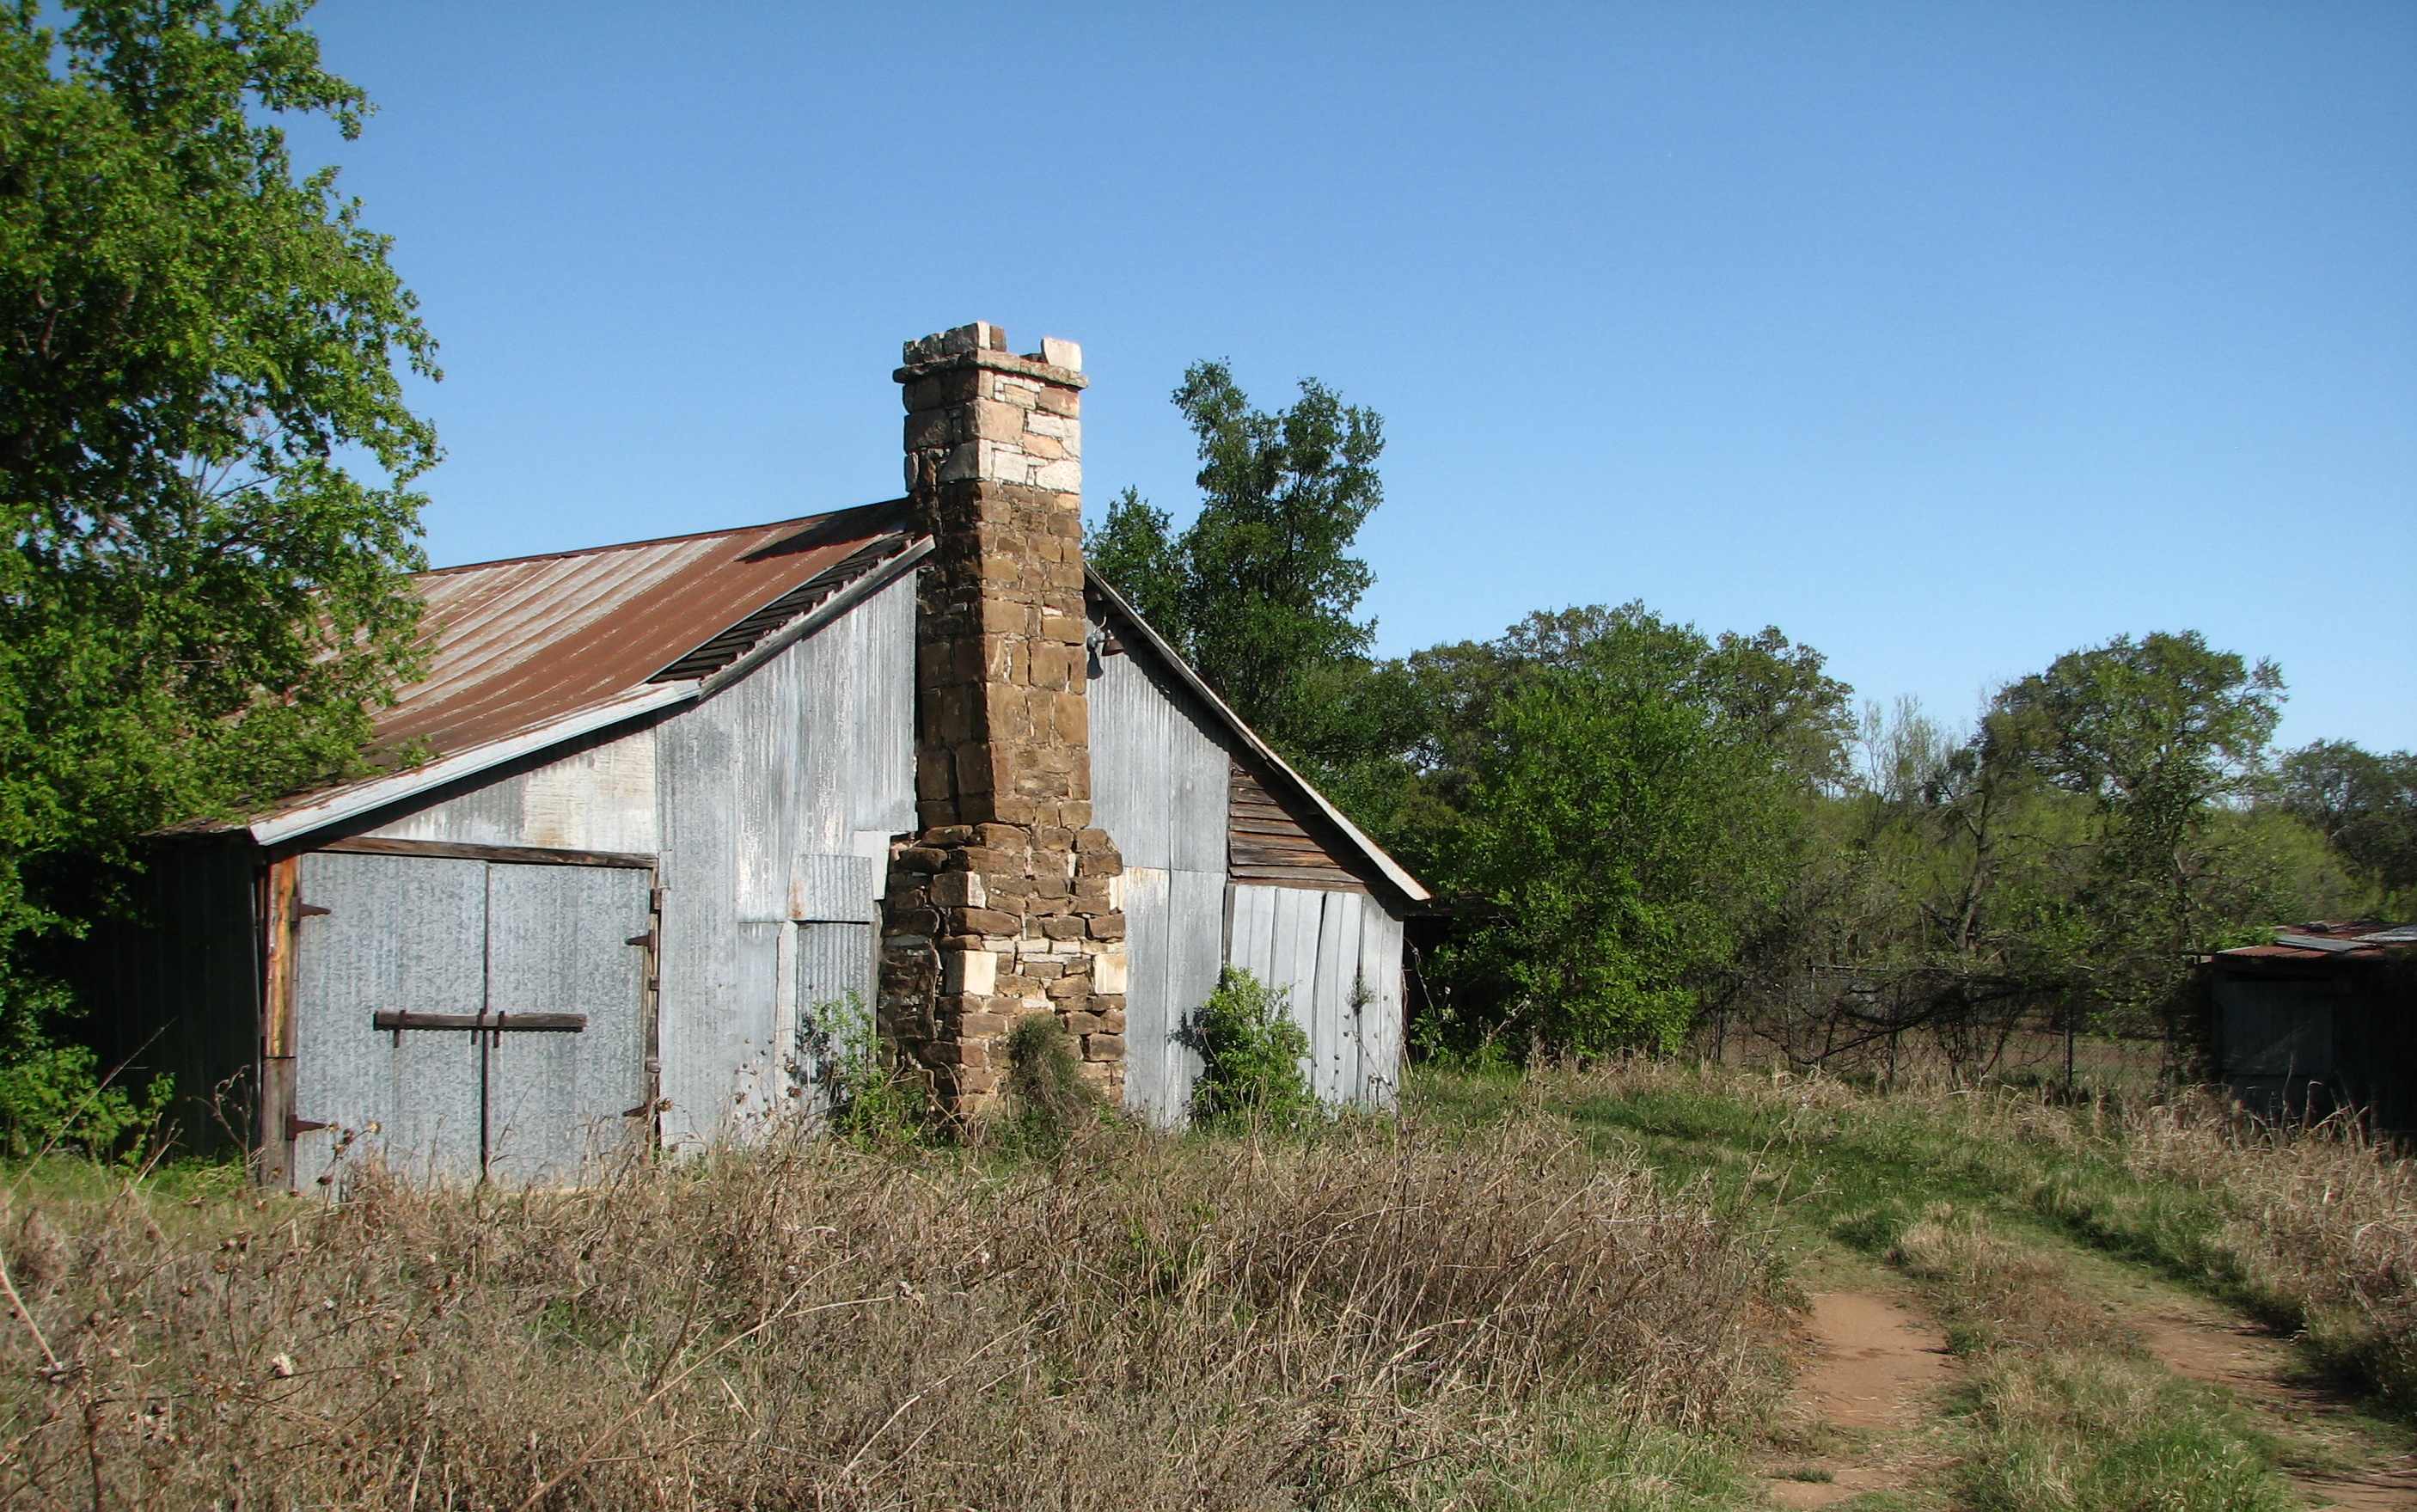 Old Farm Building, Abandoned, Country, Farm, Old, HQ Photo